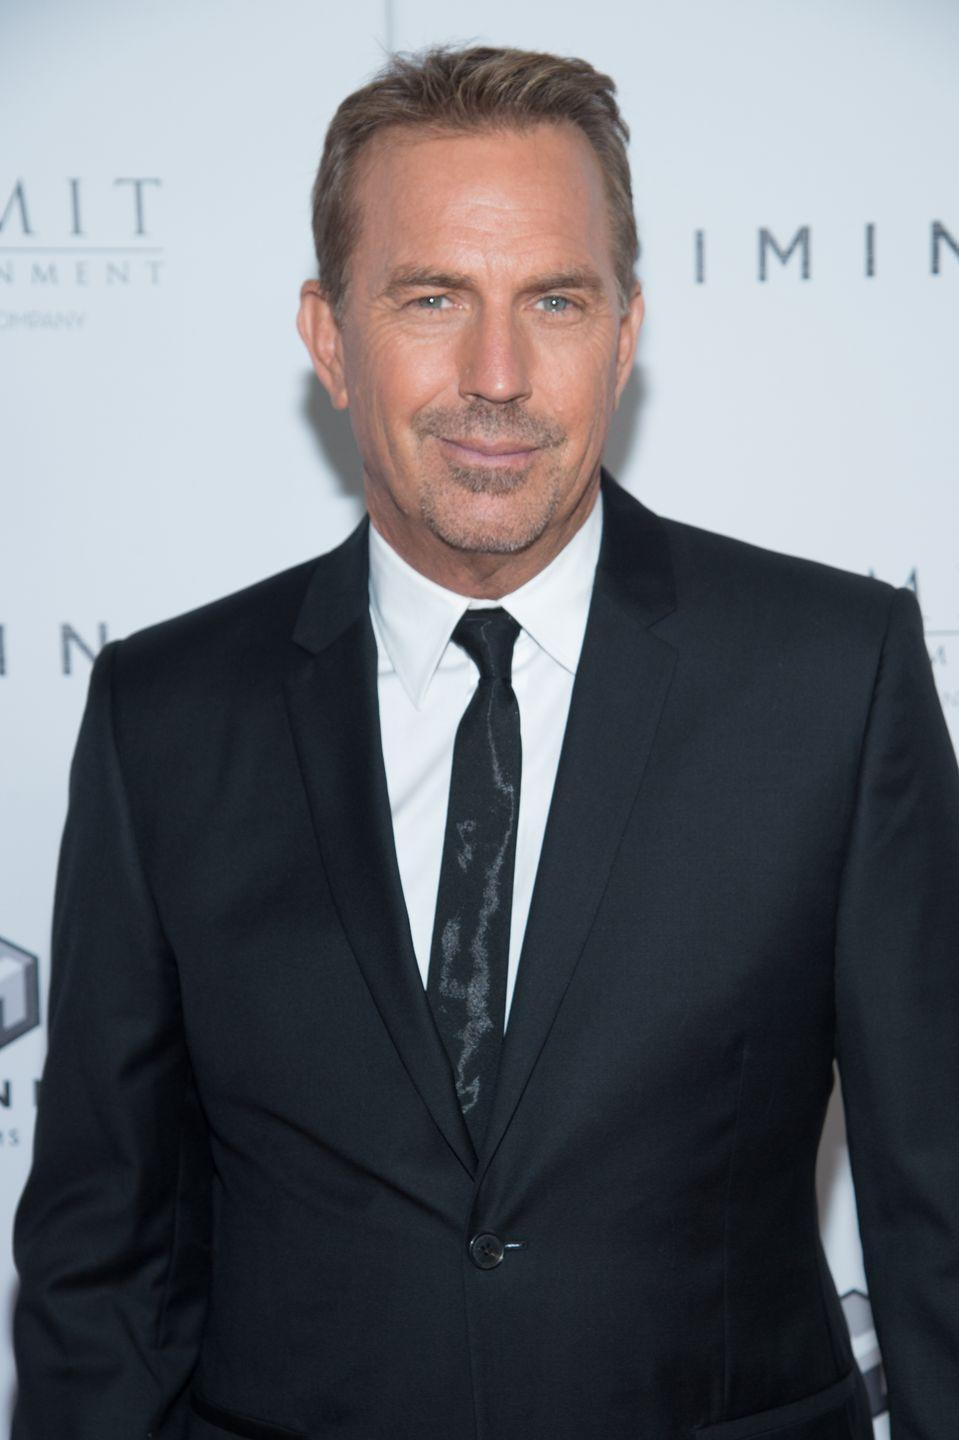 """<p>Kevin Costner didn't expect much when he earned the role of a deceased character in <em>The Big Chill</em>, but he did film some flashback scenes that he expected to be included in. In the end, <a href=""""https://www.yahoo.com/entertainment/big-chill-35-jeff-goldblum-describes-kevin-costner-scene-famously-cut-film-150040397.html"""" data-ylk=""""slk:Costner's only appearance was at his character's funeral;outcm:mb_qualified_link;_E:mb_qualified_link;ct:story;"""" class=""""link rapid-noclick-resp yahoo-link"""">Costner's only appearance was at his character's funeral</a>.</p>"""